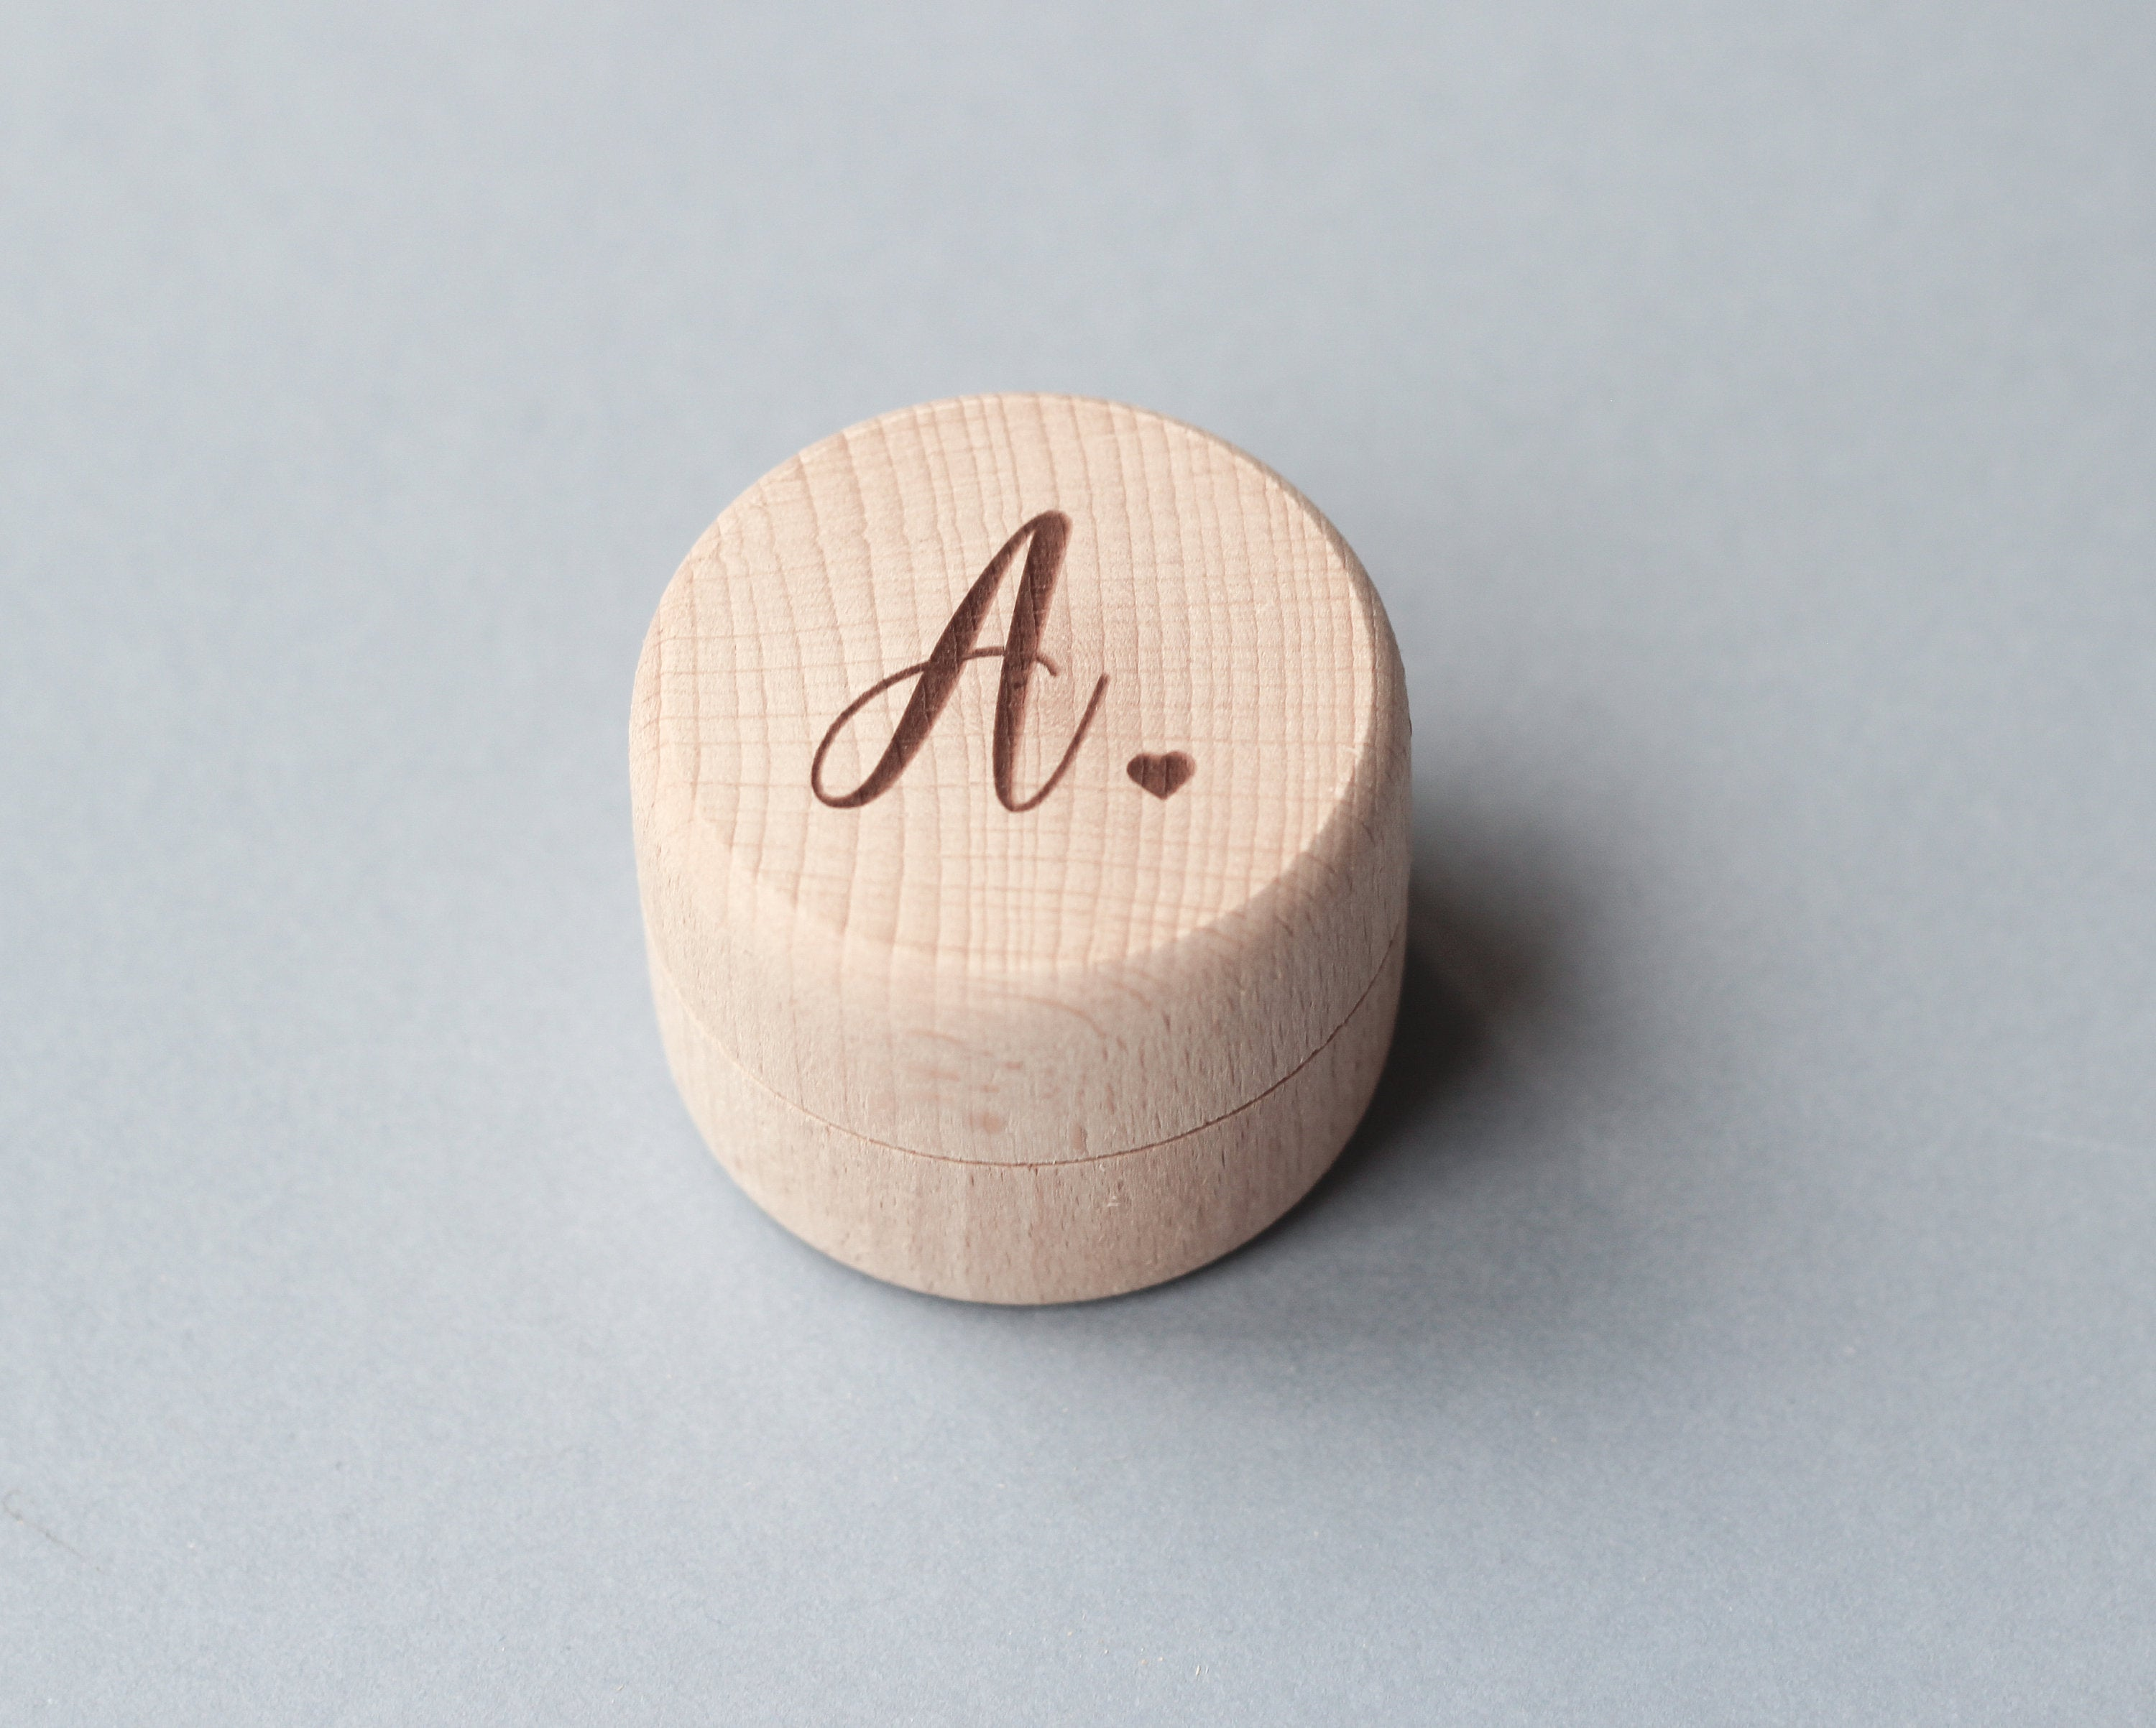 fira-site - Wooden Ring Box With Your Initial And Heart